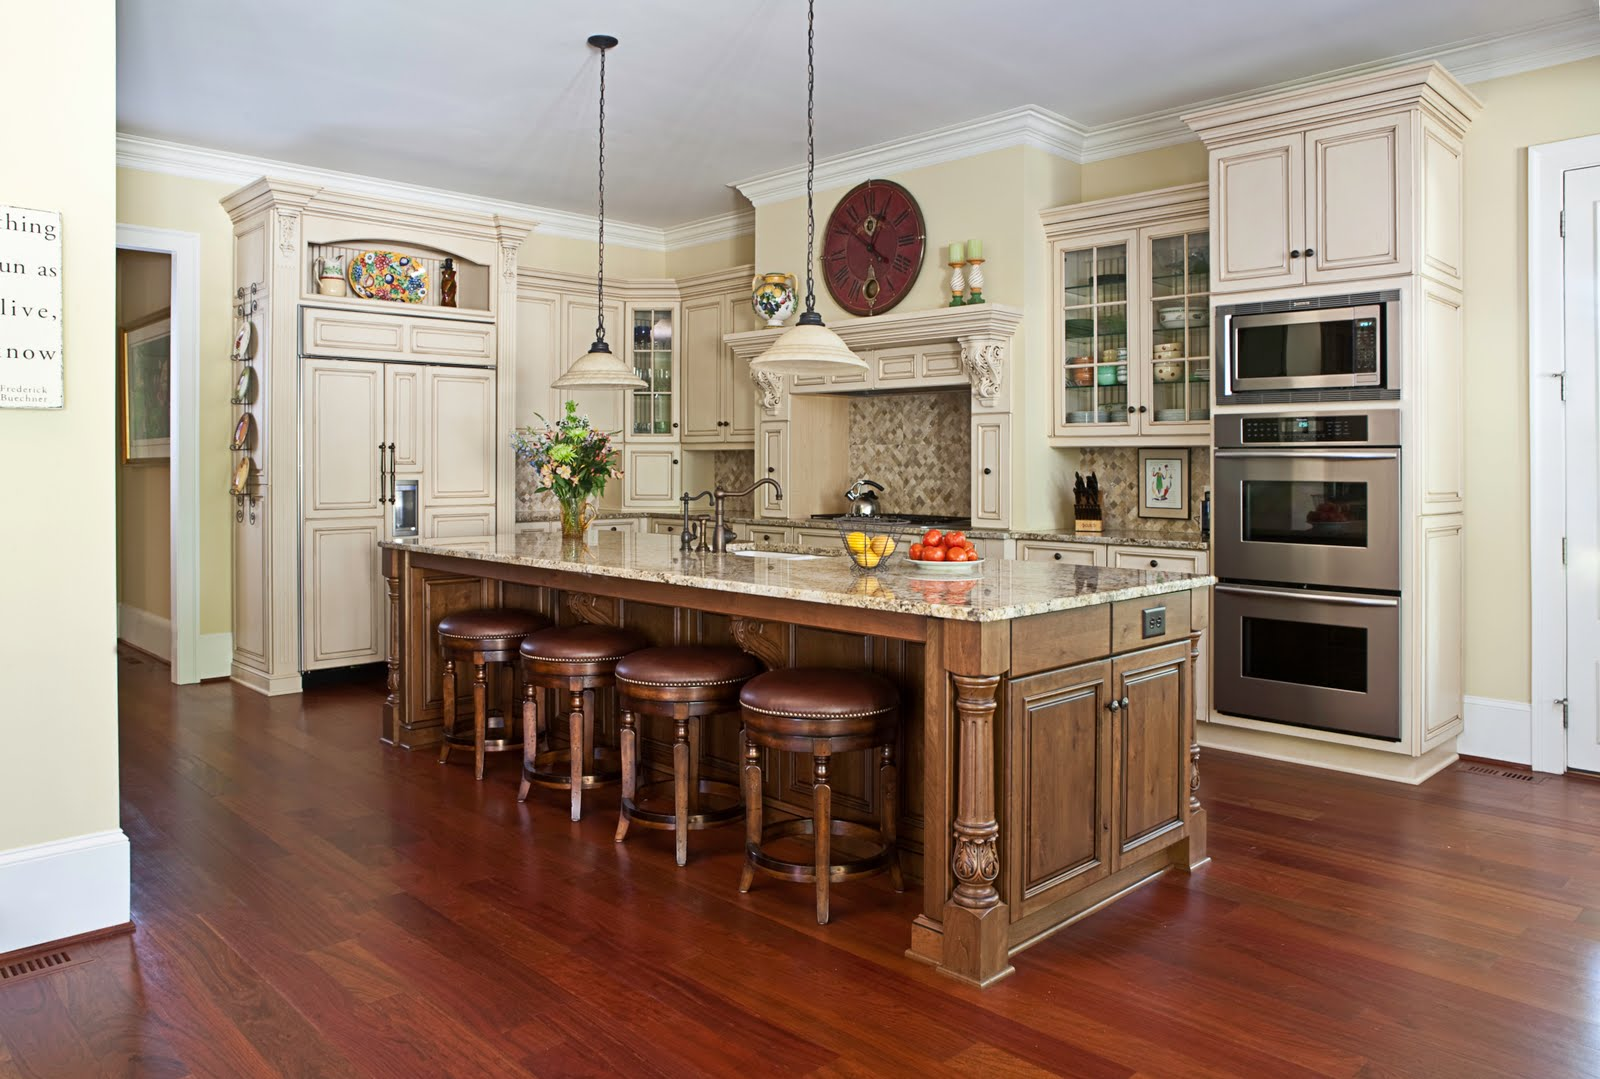 Cheryl smith associates interior design what height for Kitchen island height